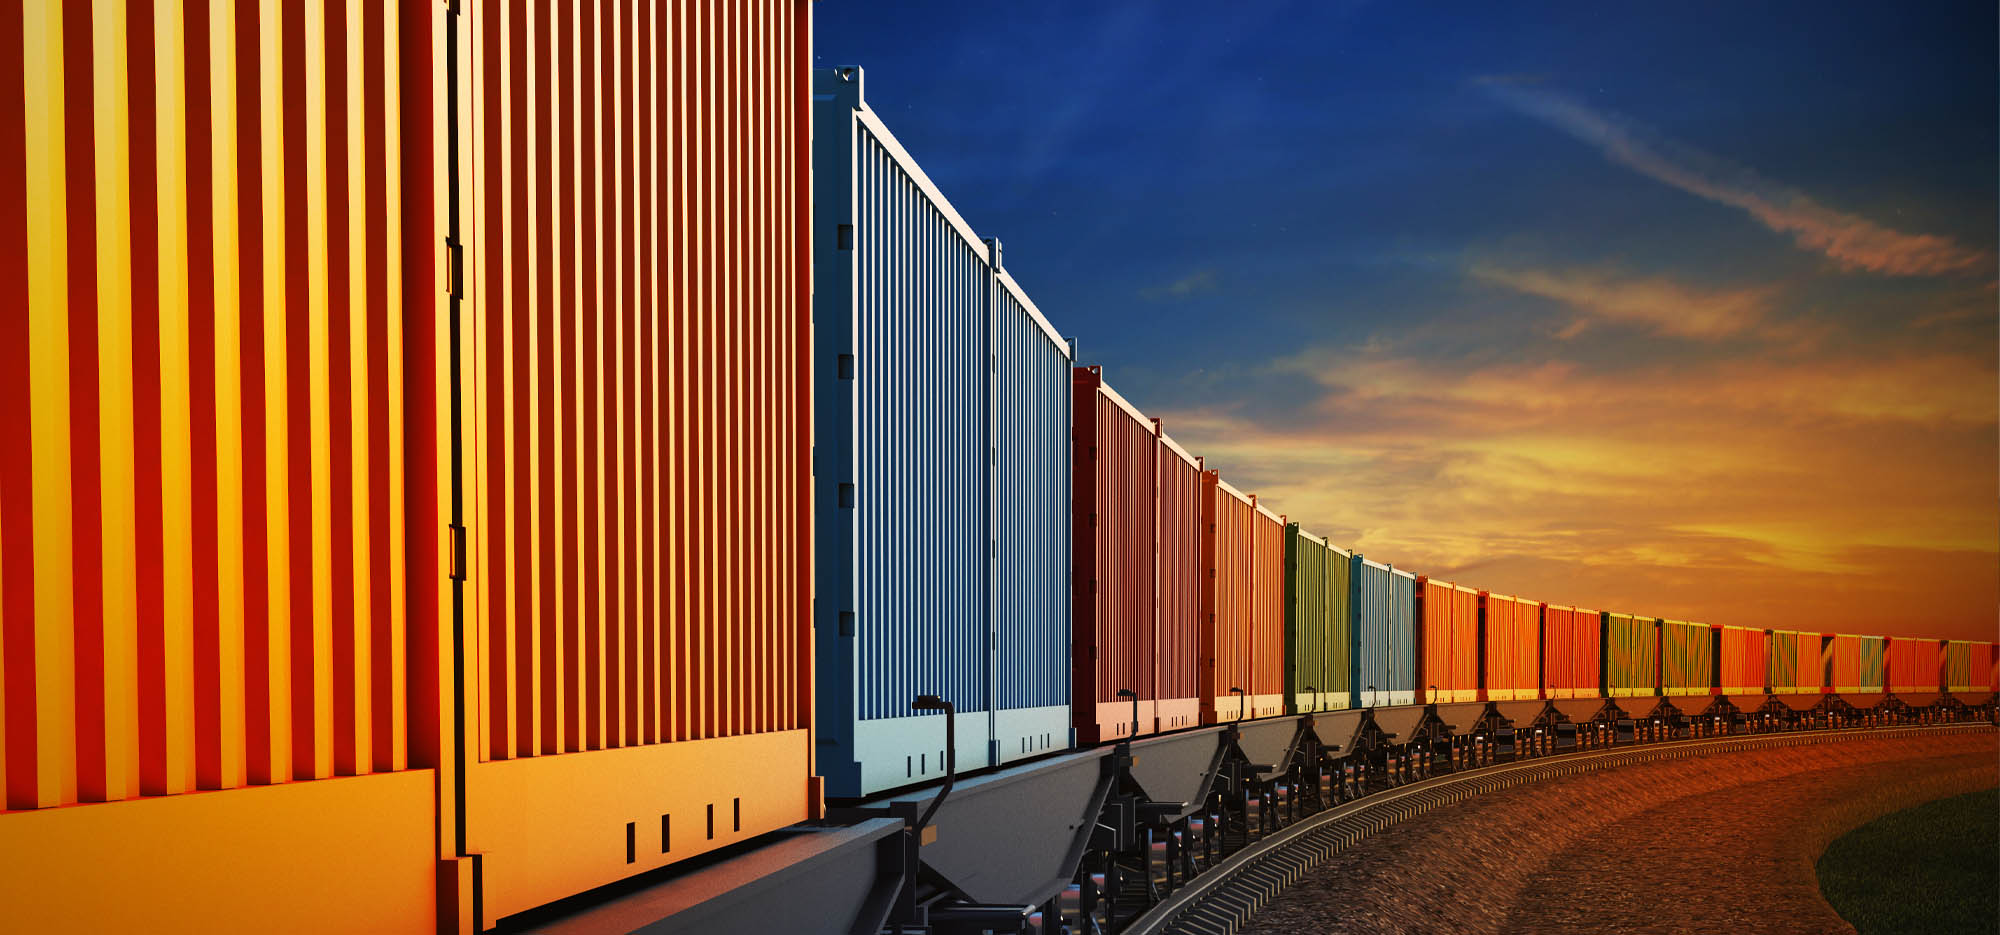 Shippers & Forwarders Contend With 2020's Many Challenges